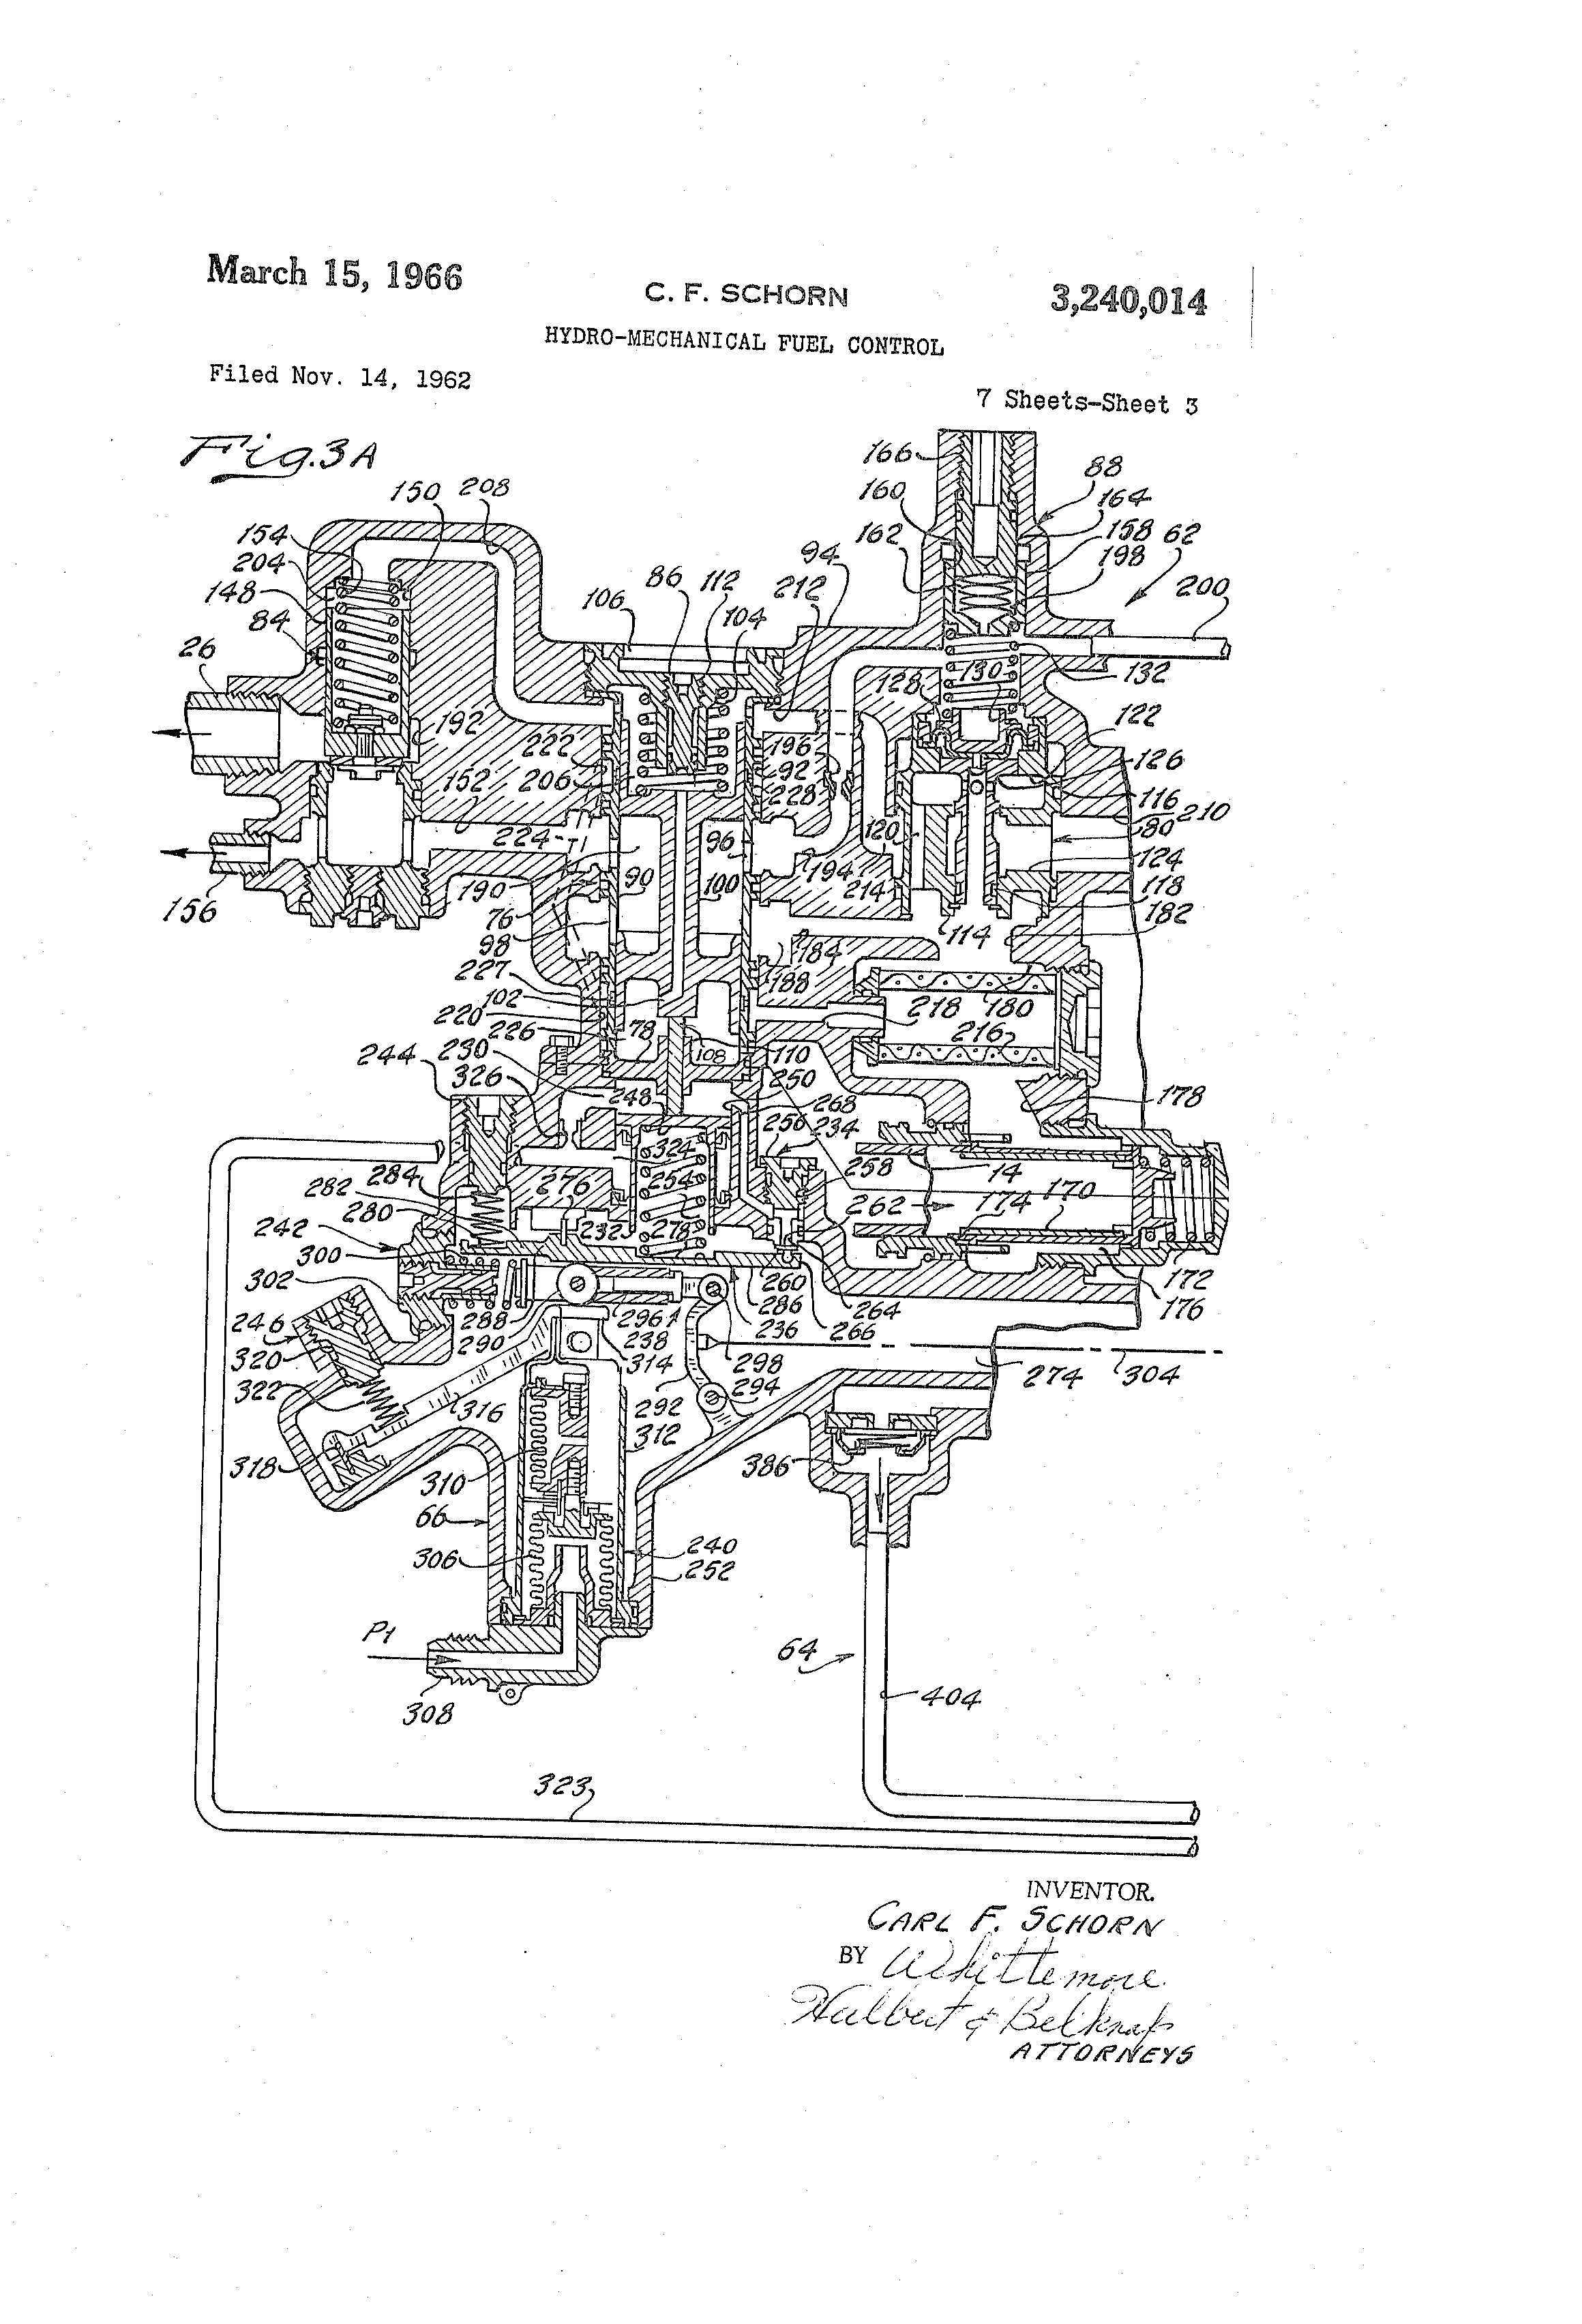 patent us3240014 - hydro-mechanical fuel control